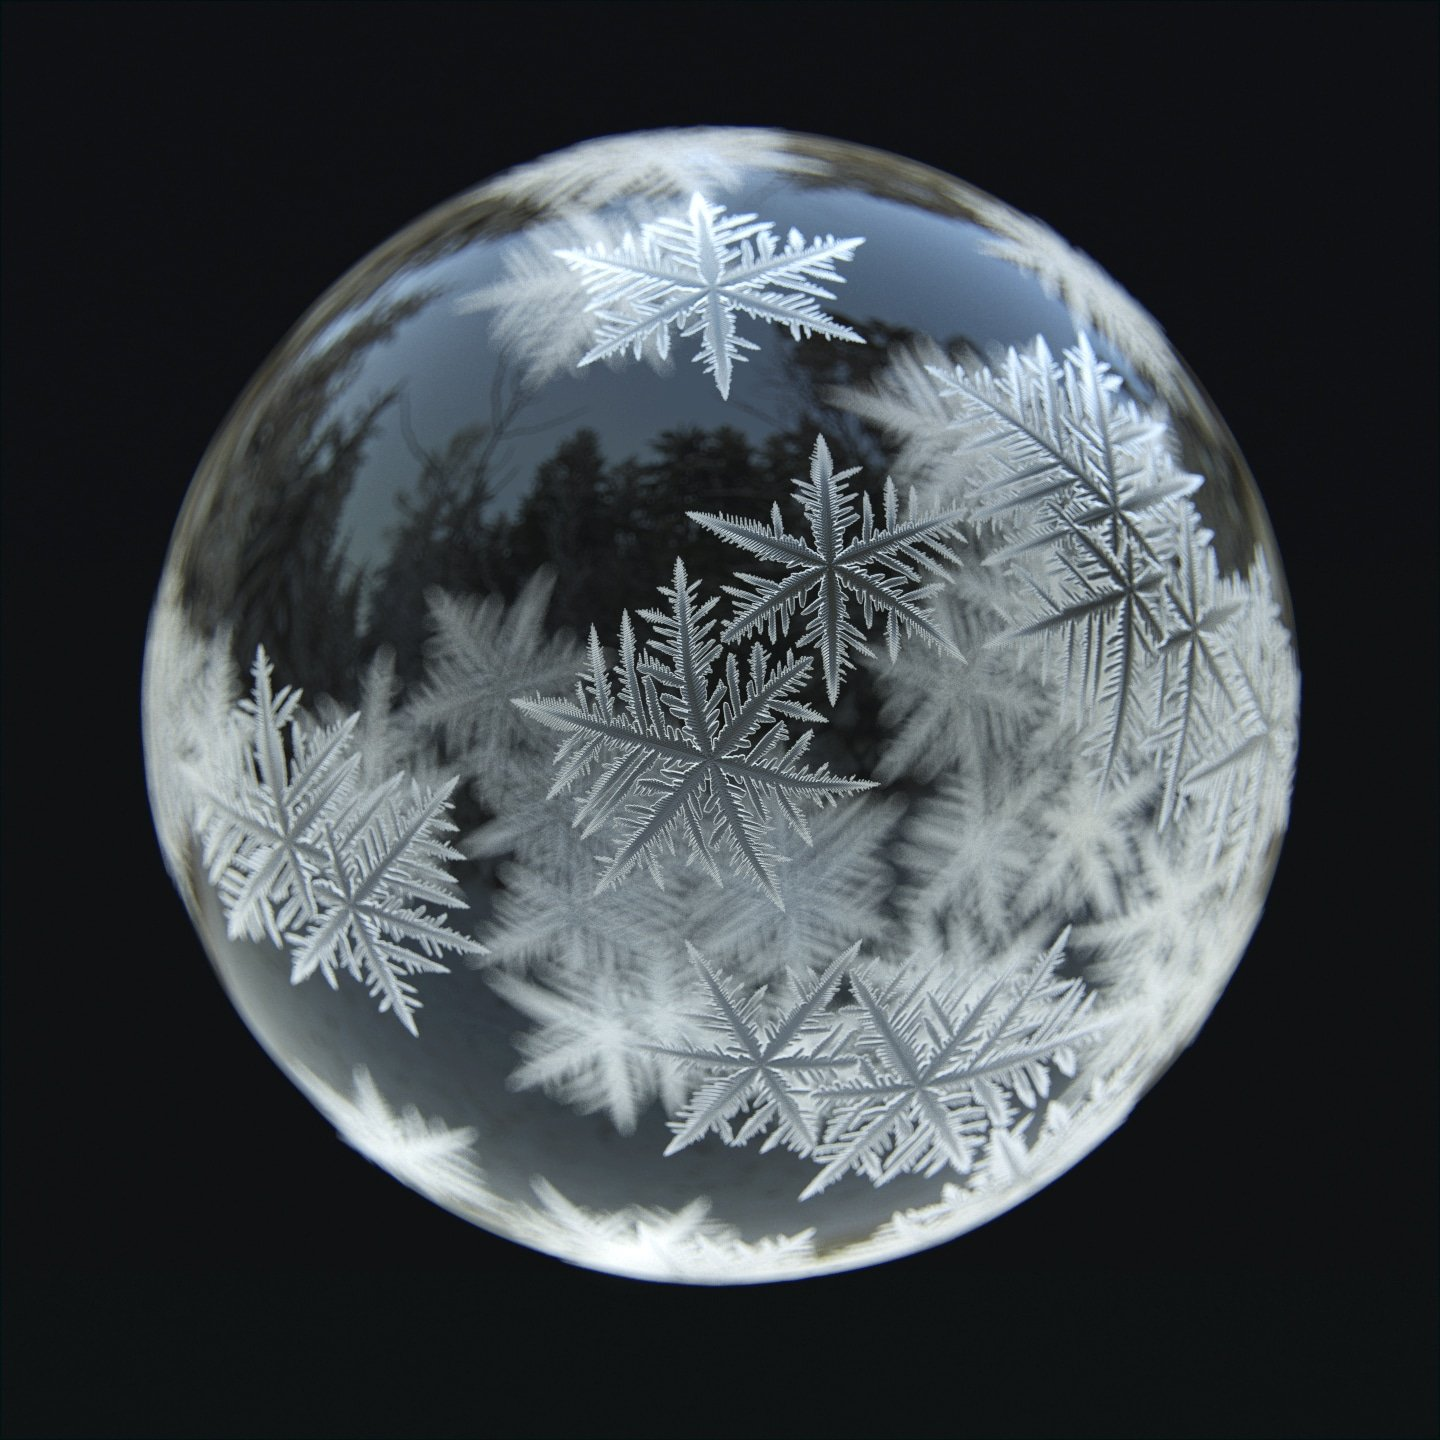 The Snowflake Bubble